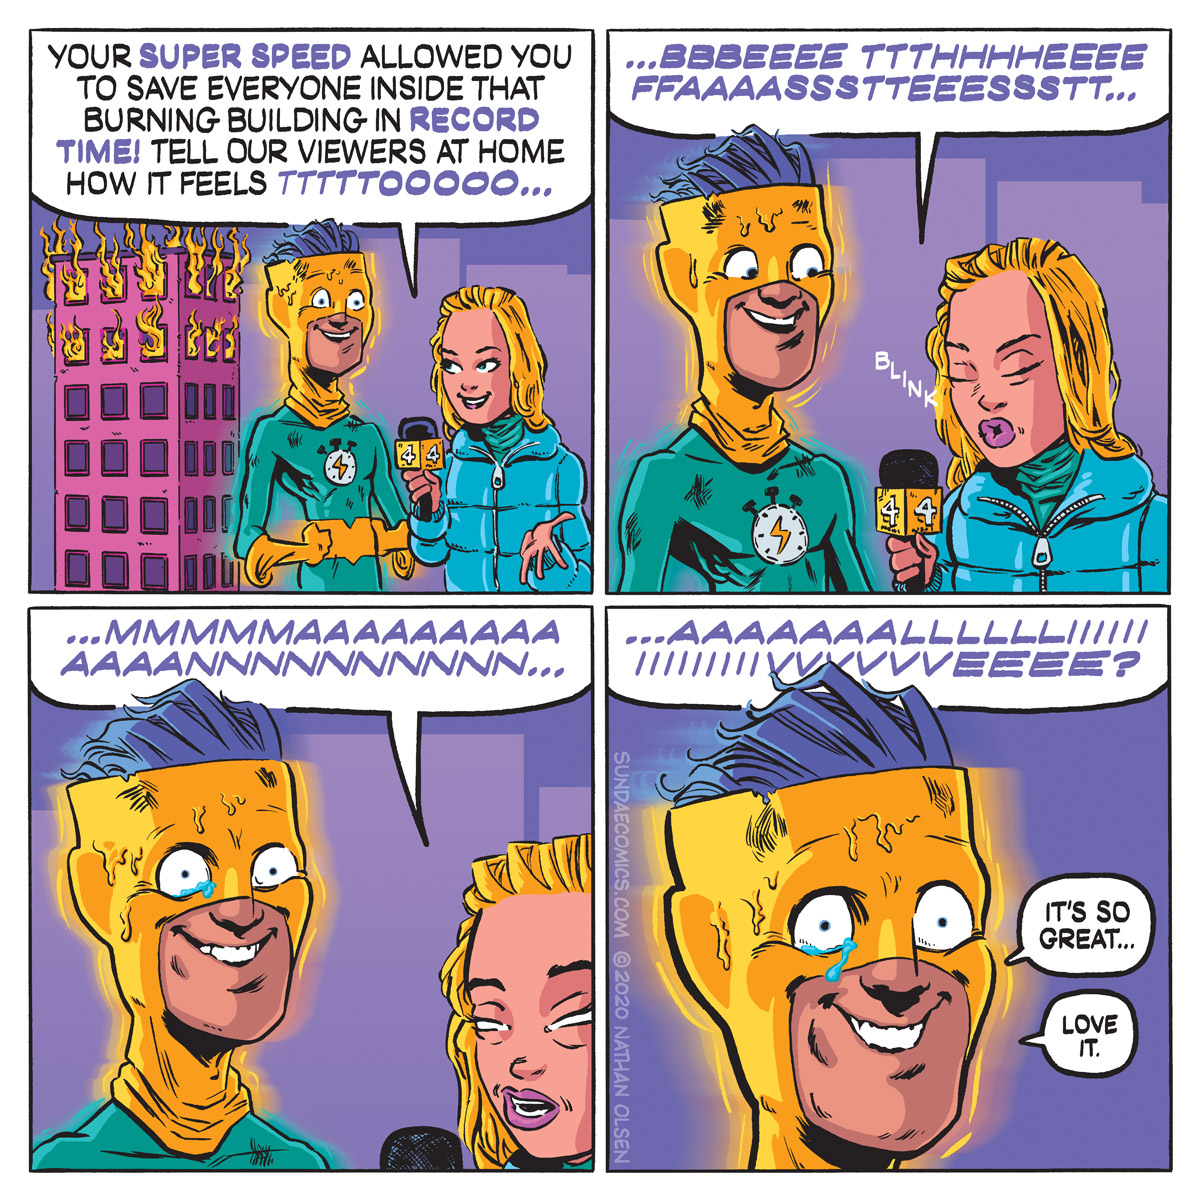 A webcomic about what it is really like to be the fastest superhero in the world.